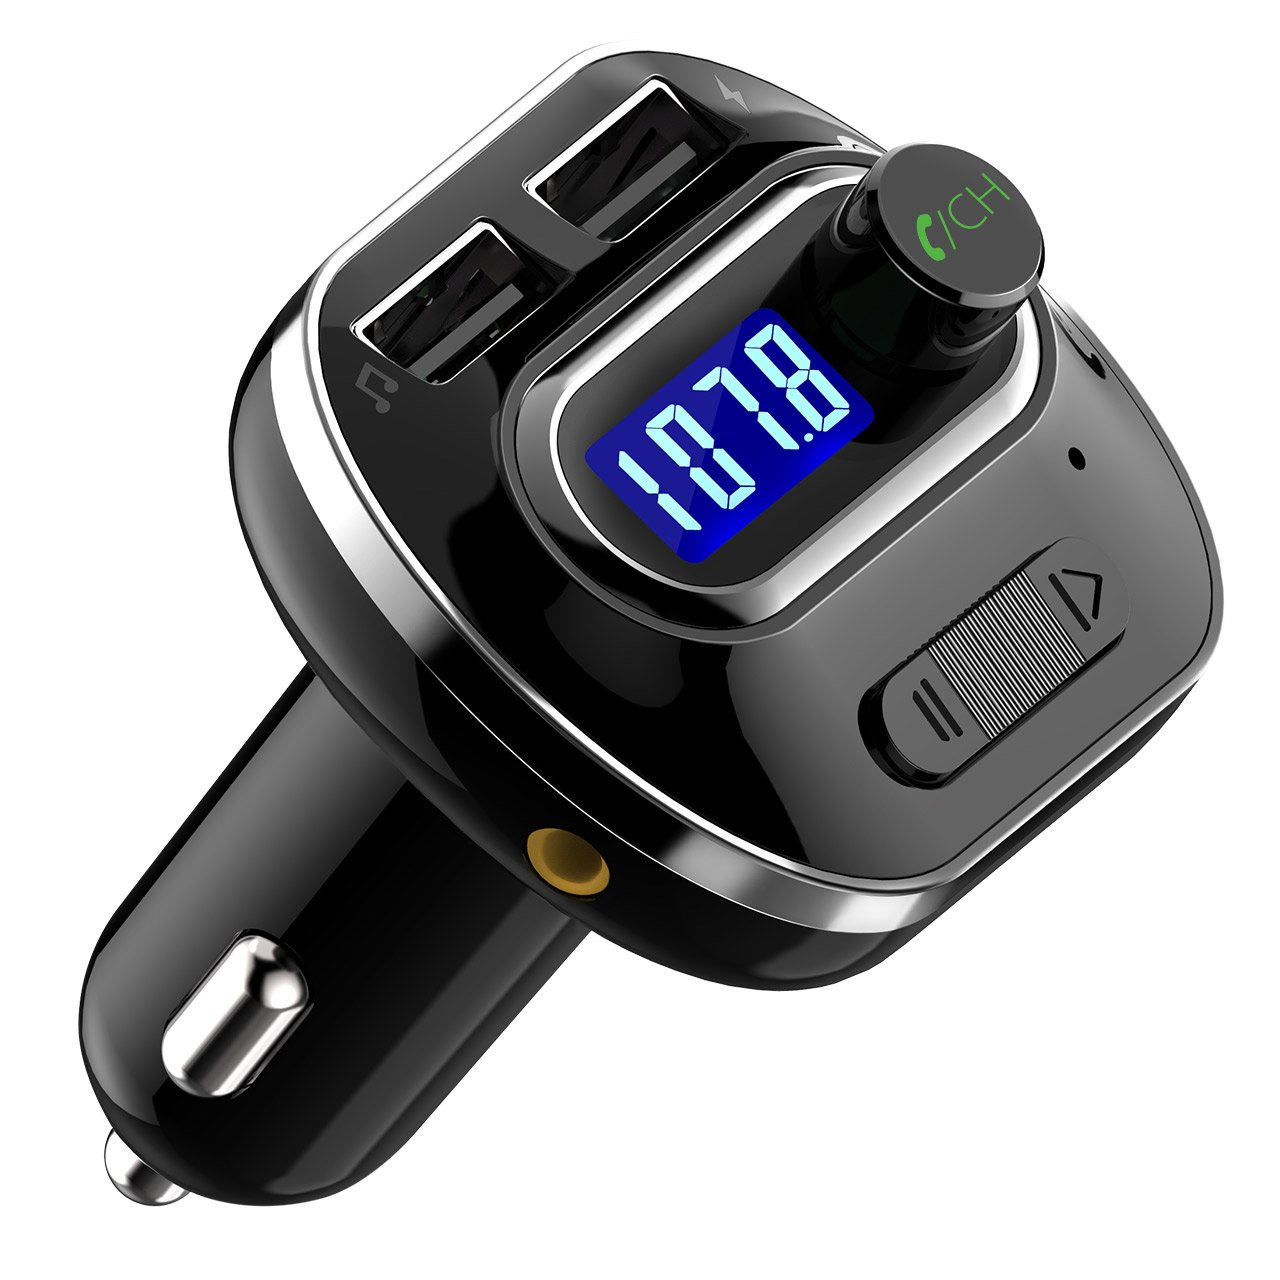 VicTsing (Upgraded Version) V4.1 Bluetooth FM Transmitter for Car, Wireless In-Car Bluetooth Adapter, Bluetooth Radio Transmitter Support Aux Input Output, TF Card and U-Disk, Hands-Free calls by VicTsing